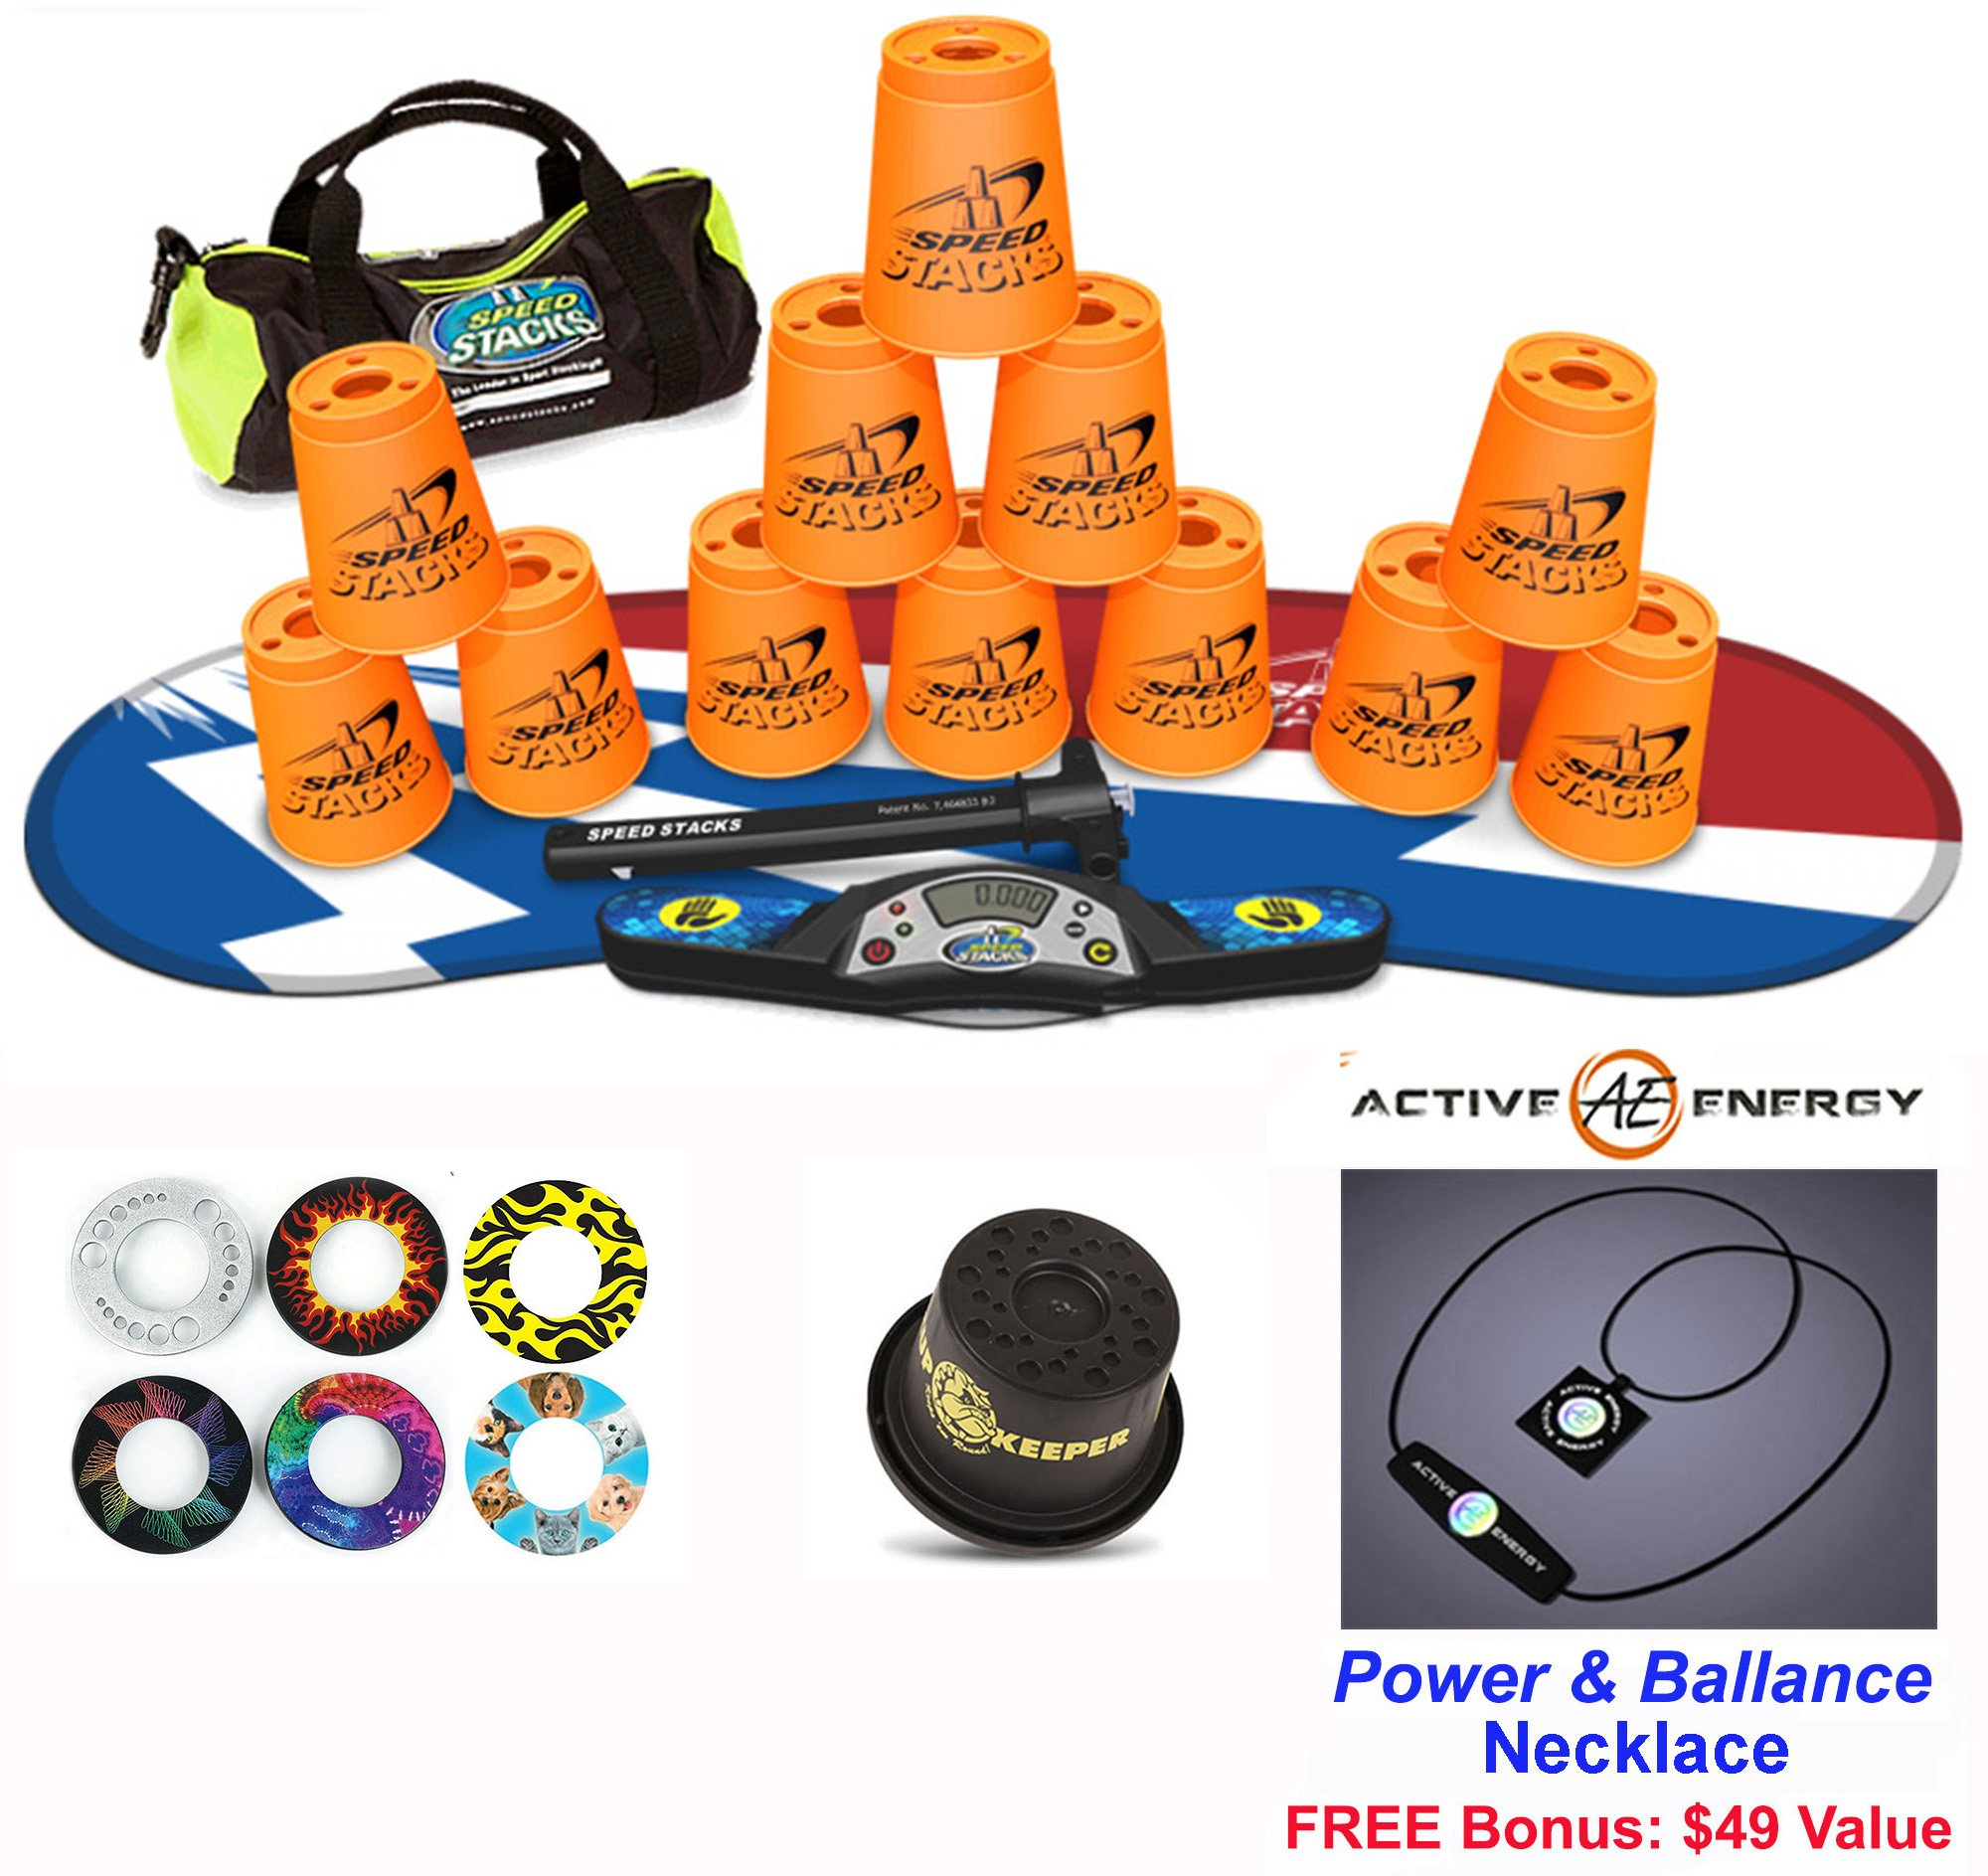 Speed Stacks Combo Set 'The Works'': 12 ORANGE 4'' Cups, Atomic Punch Gen 3 Mat, G4 Pro Timer, Cup Keeper, Stem, Gear Bag + Active Energy Necklace